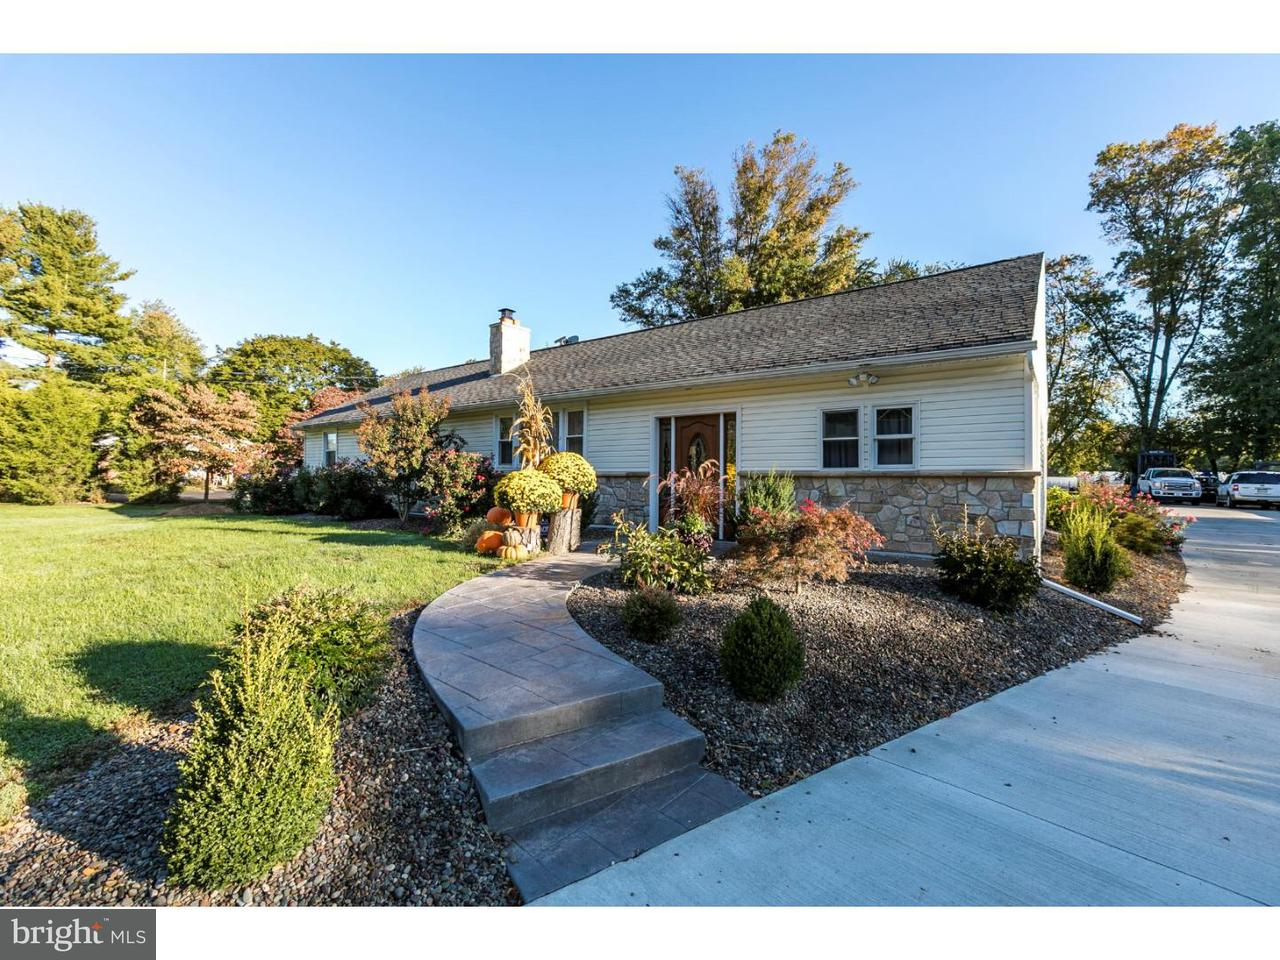 Single Family Home for Sale at 230 BRIDGE Street Collegeville, Pennsylvania 19426 United States